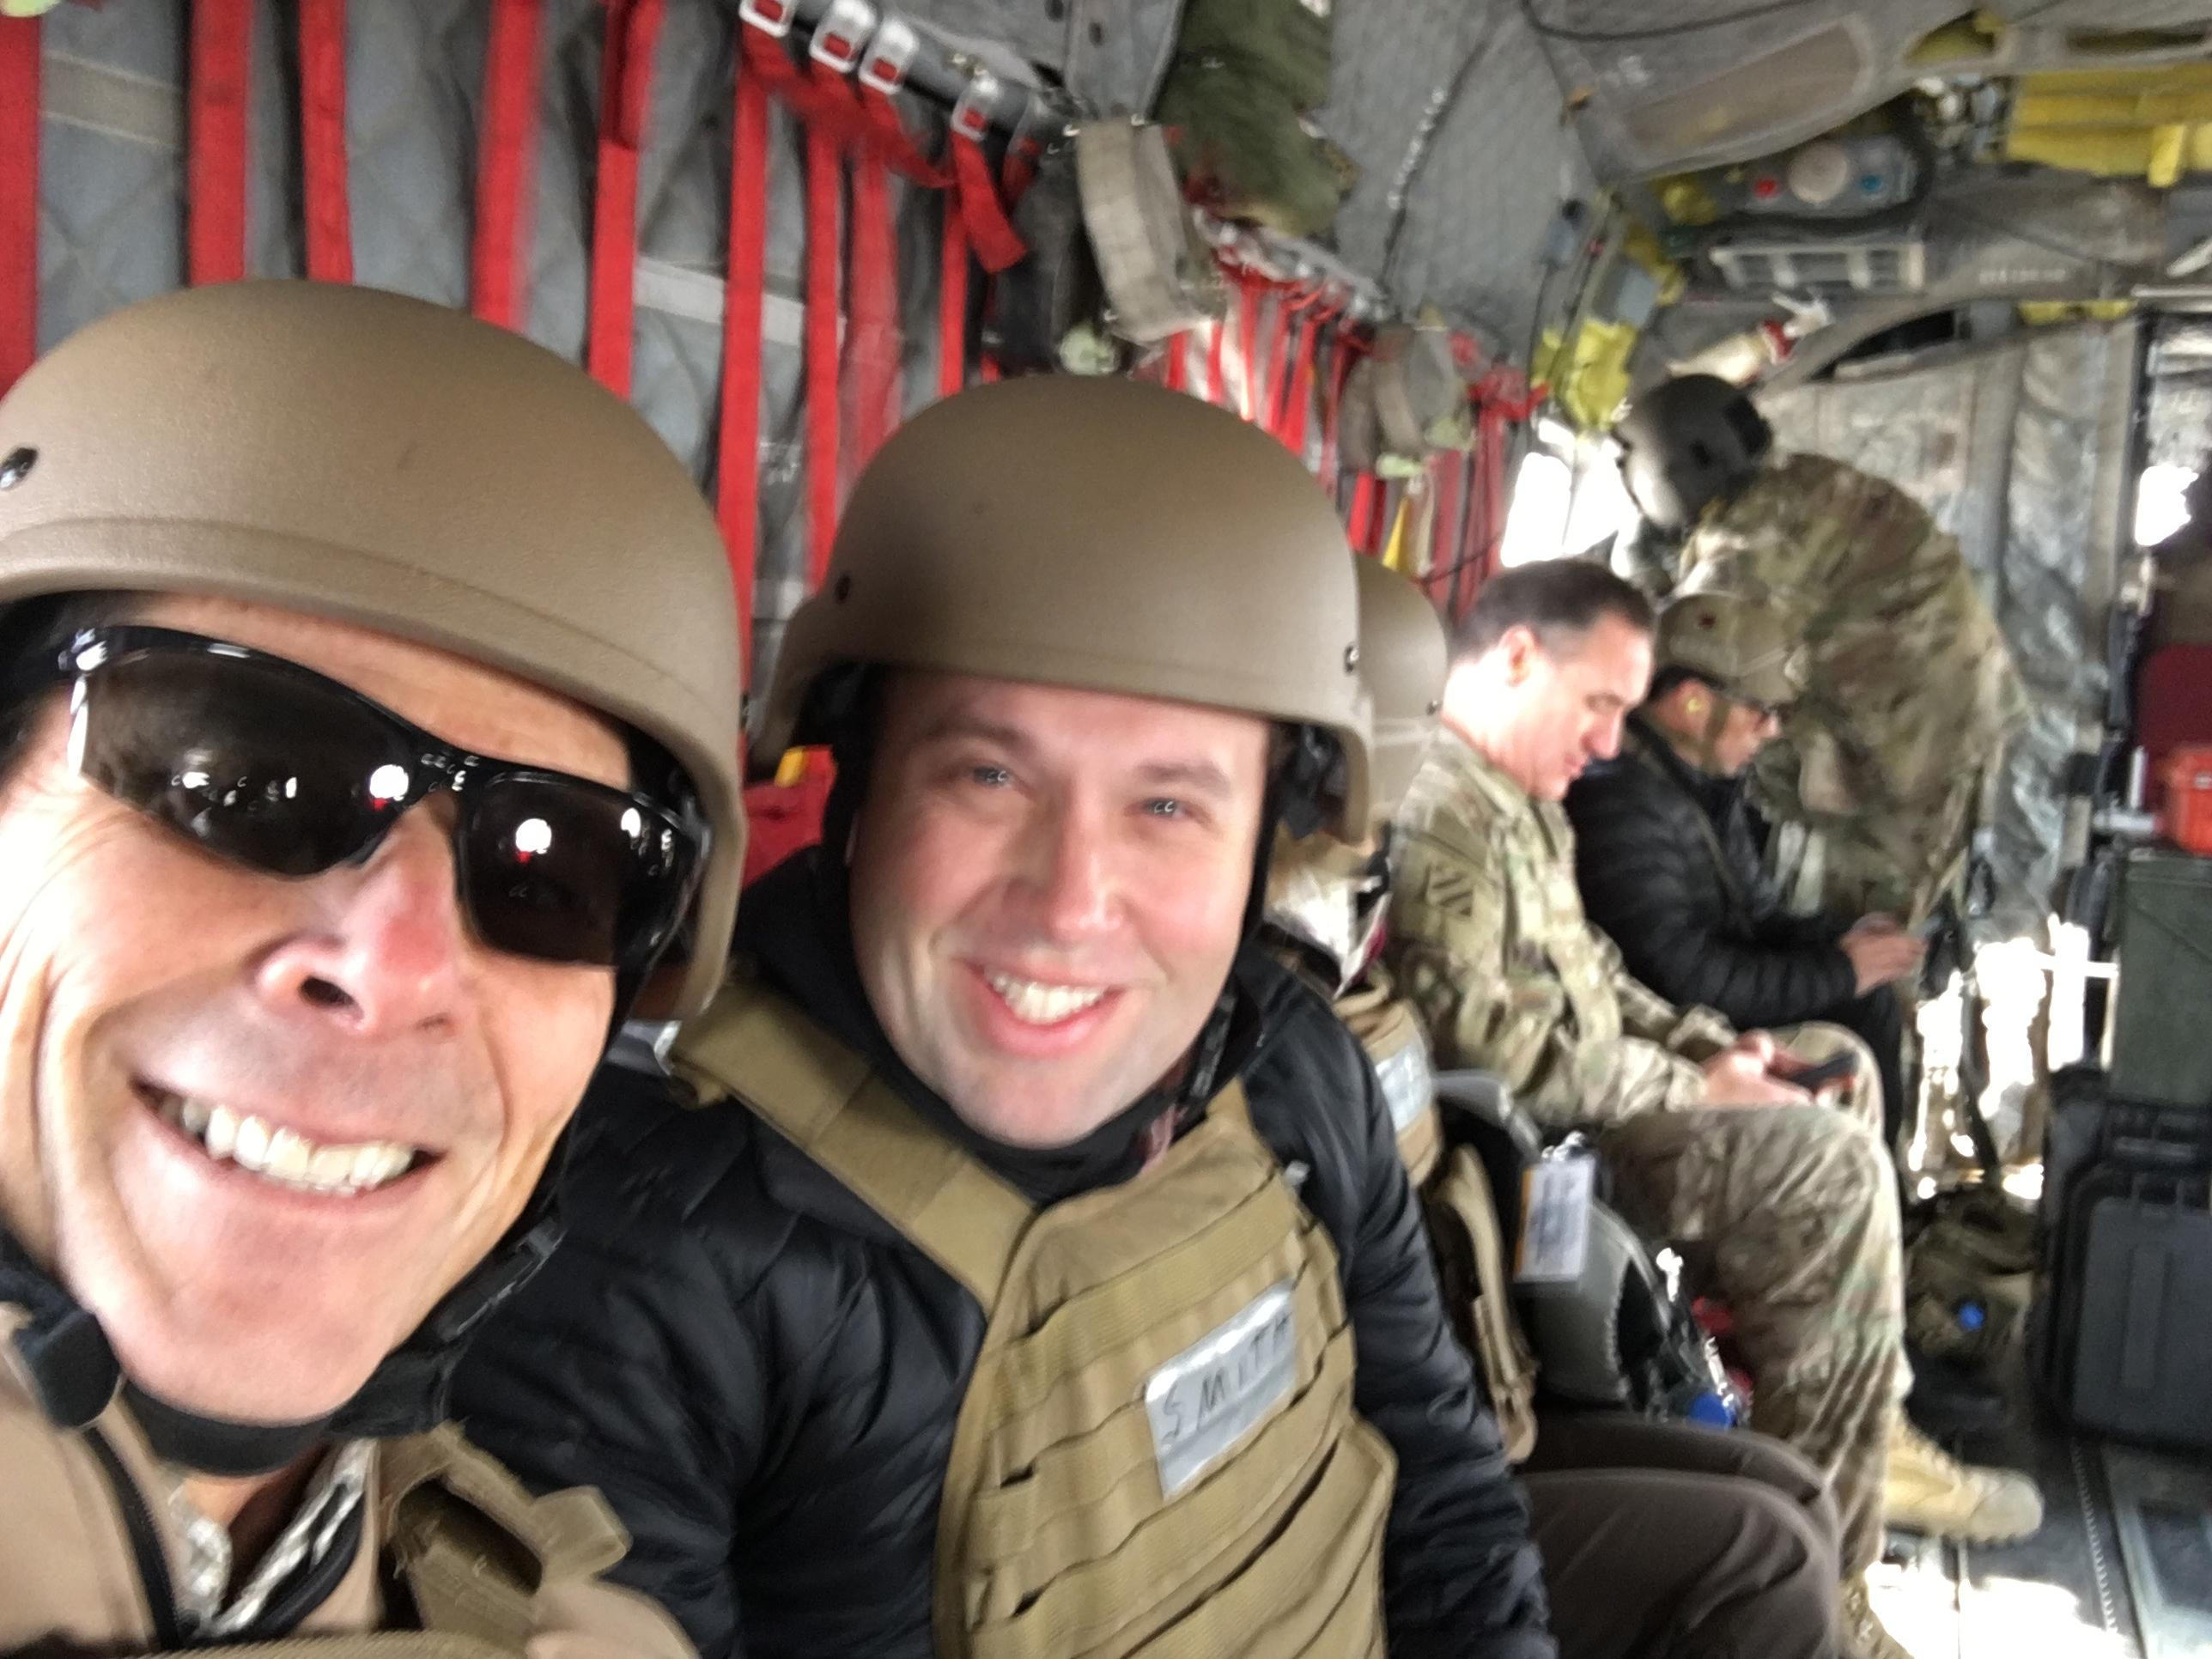 <p>Rep. John Curtis is back in Utah after a visit to the Middle East where he thanked the troops and learned more about the difficulties they're facing in the region. (Photo courtesy of Rep. John Curtis){&nbsp;}</p>